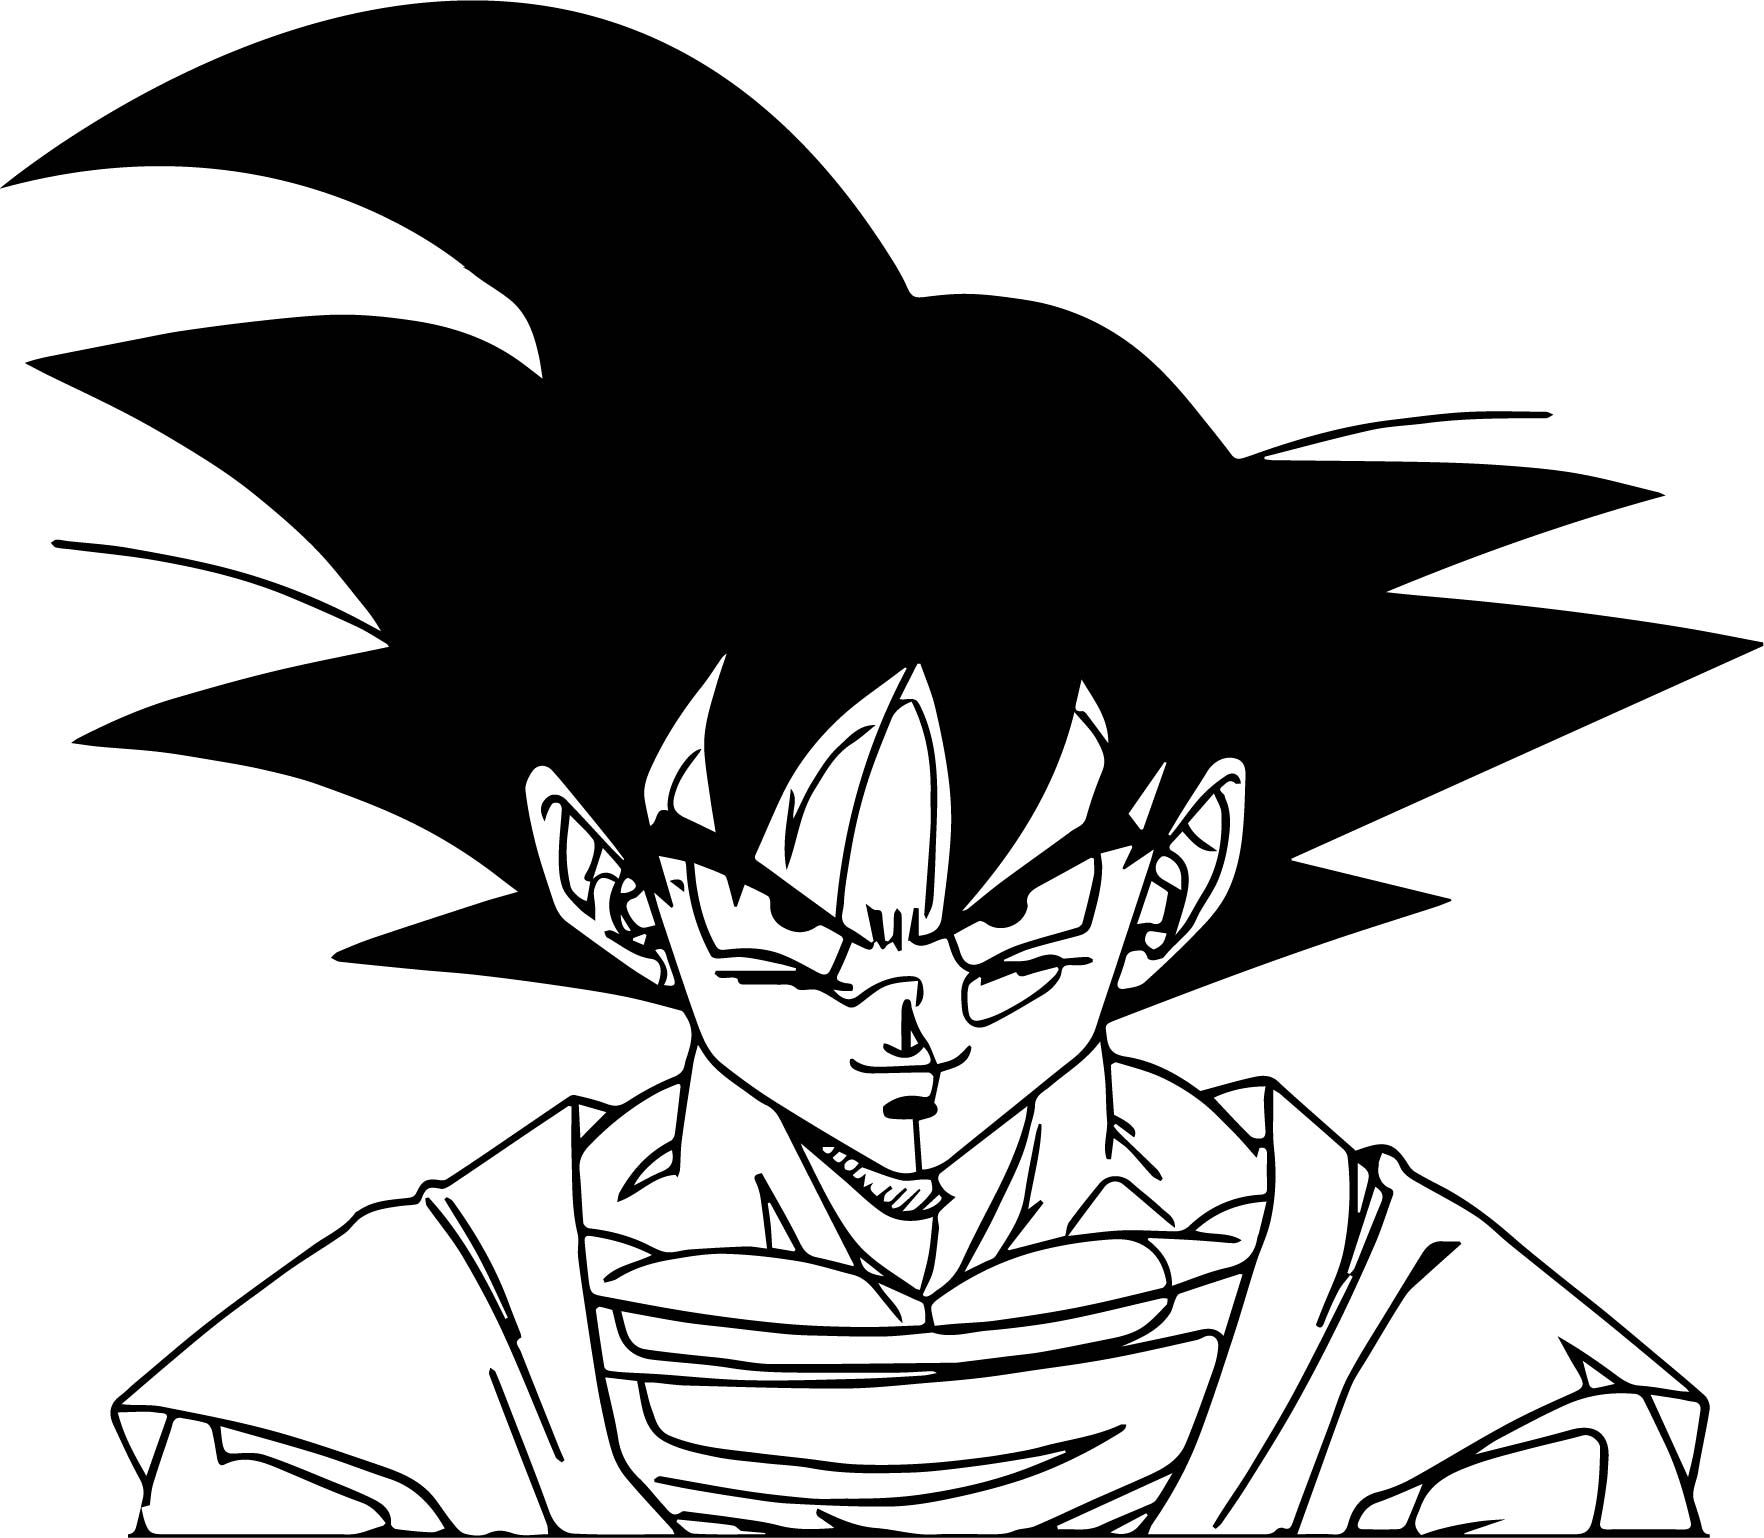 Goku face coloring pages